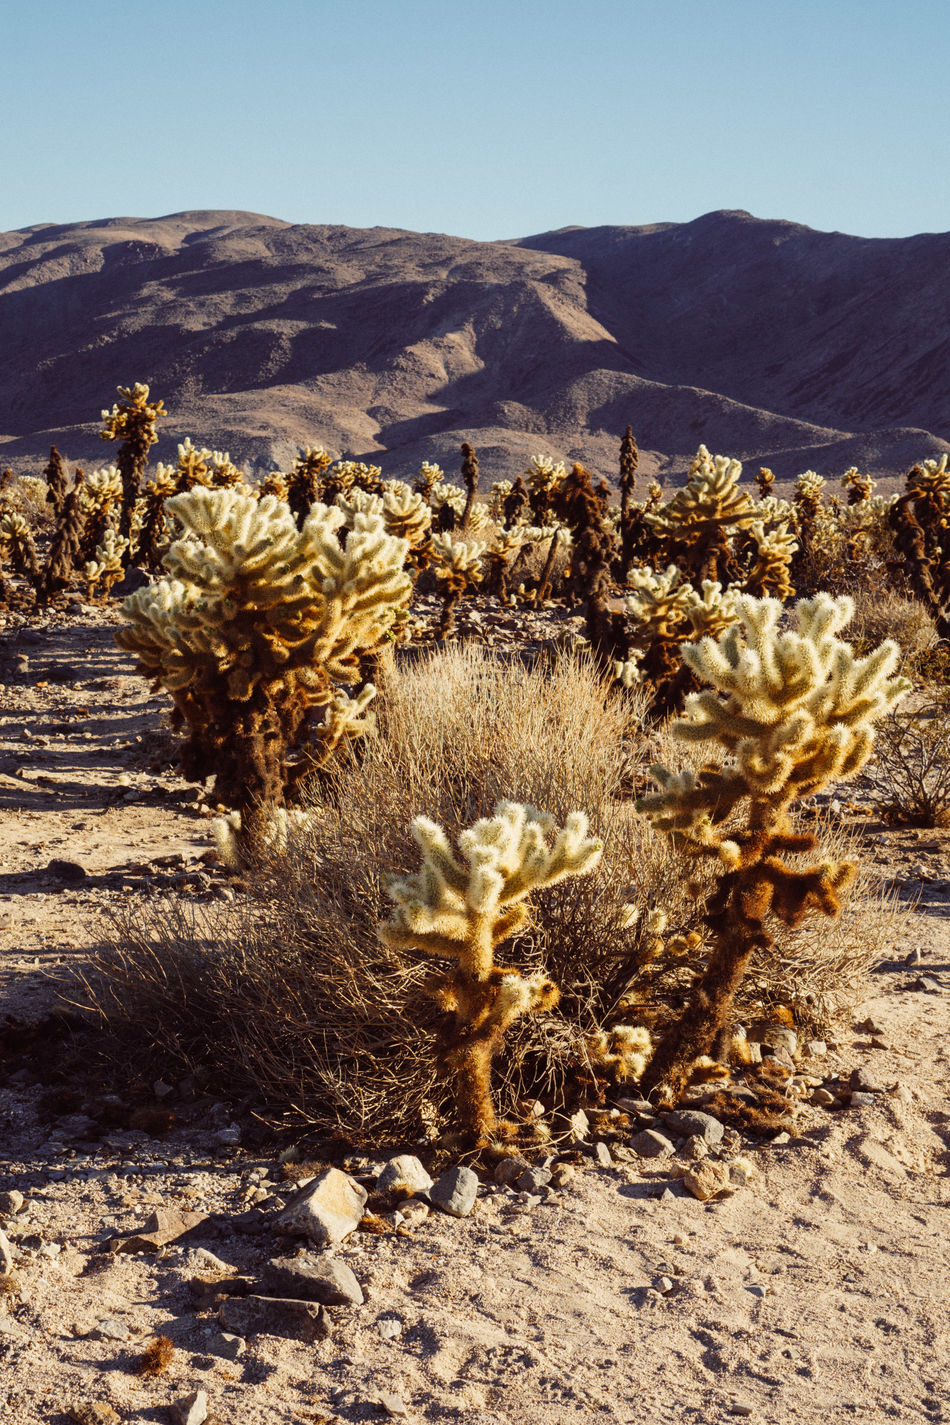 Arid Climate Beauty In Nature Cactus Day Growth Landscape Mountain Mountain Range Nature No People Outdoors Plant Scenics Sky Sunlight Tranquil Scene Tranquility Wilderness Area